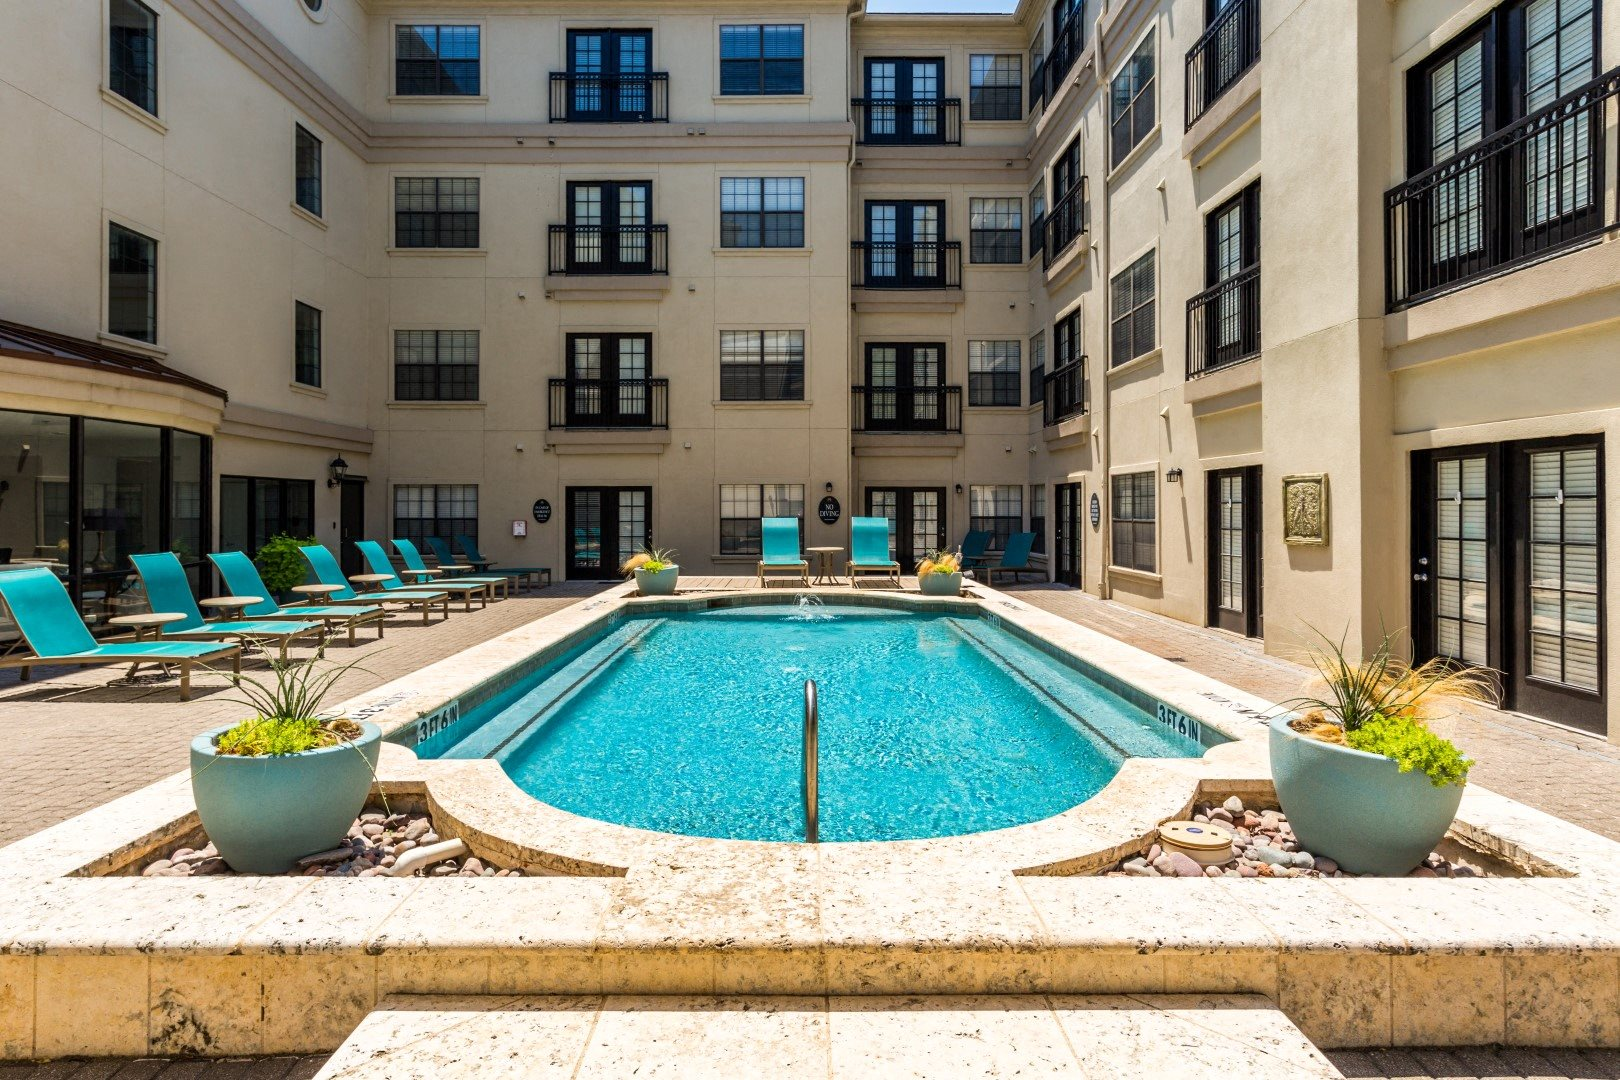 2 bedroom apartments in dallas, tx with a pool